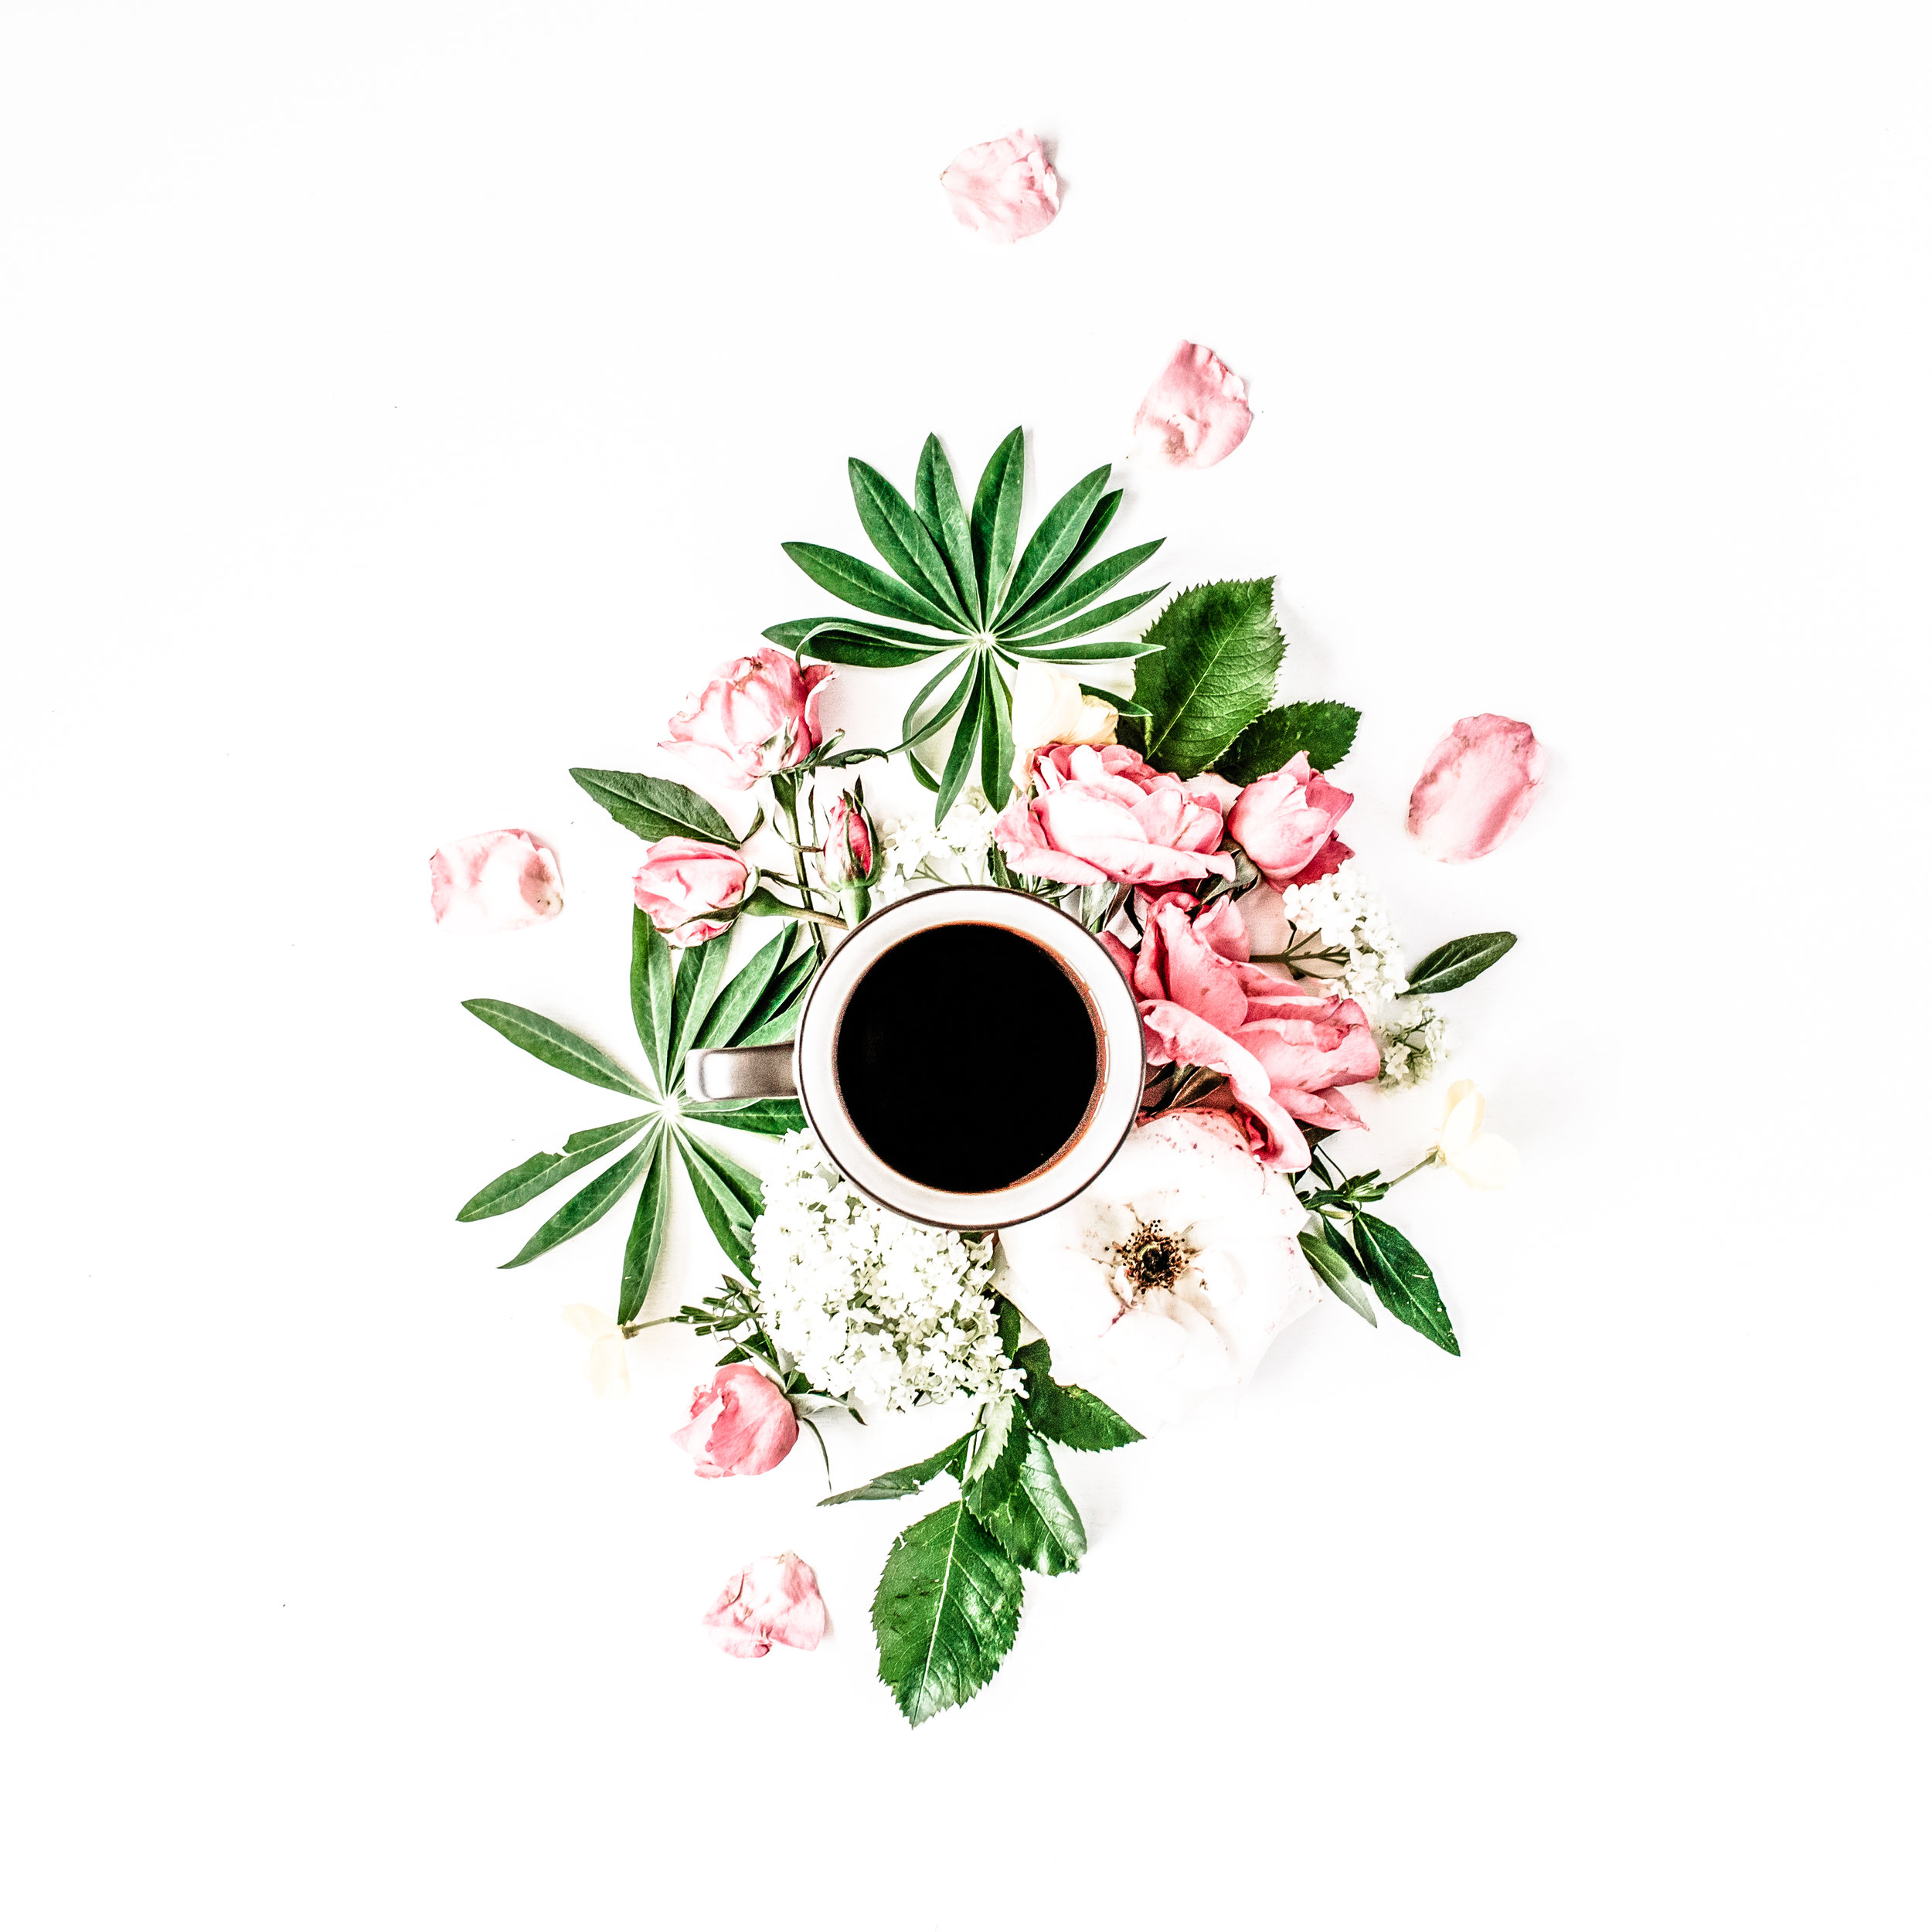 black coffee mug pink roses and white hydrangea flowers bouquet on white background. flat lay top view